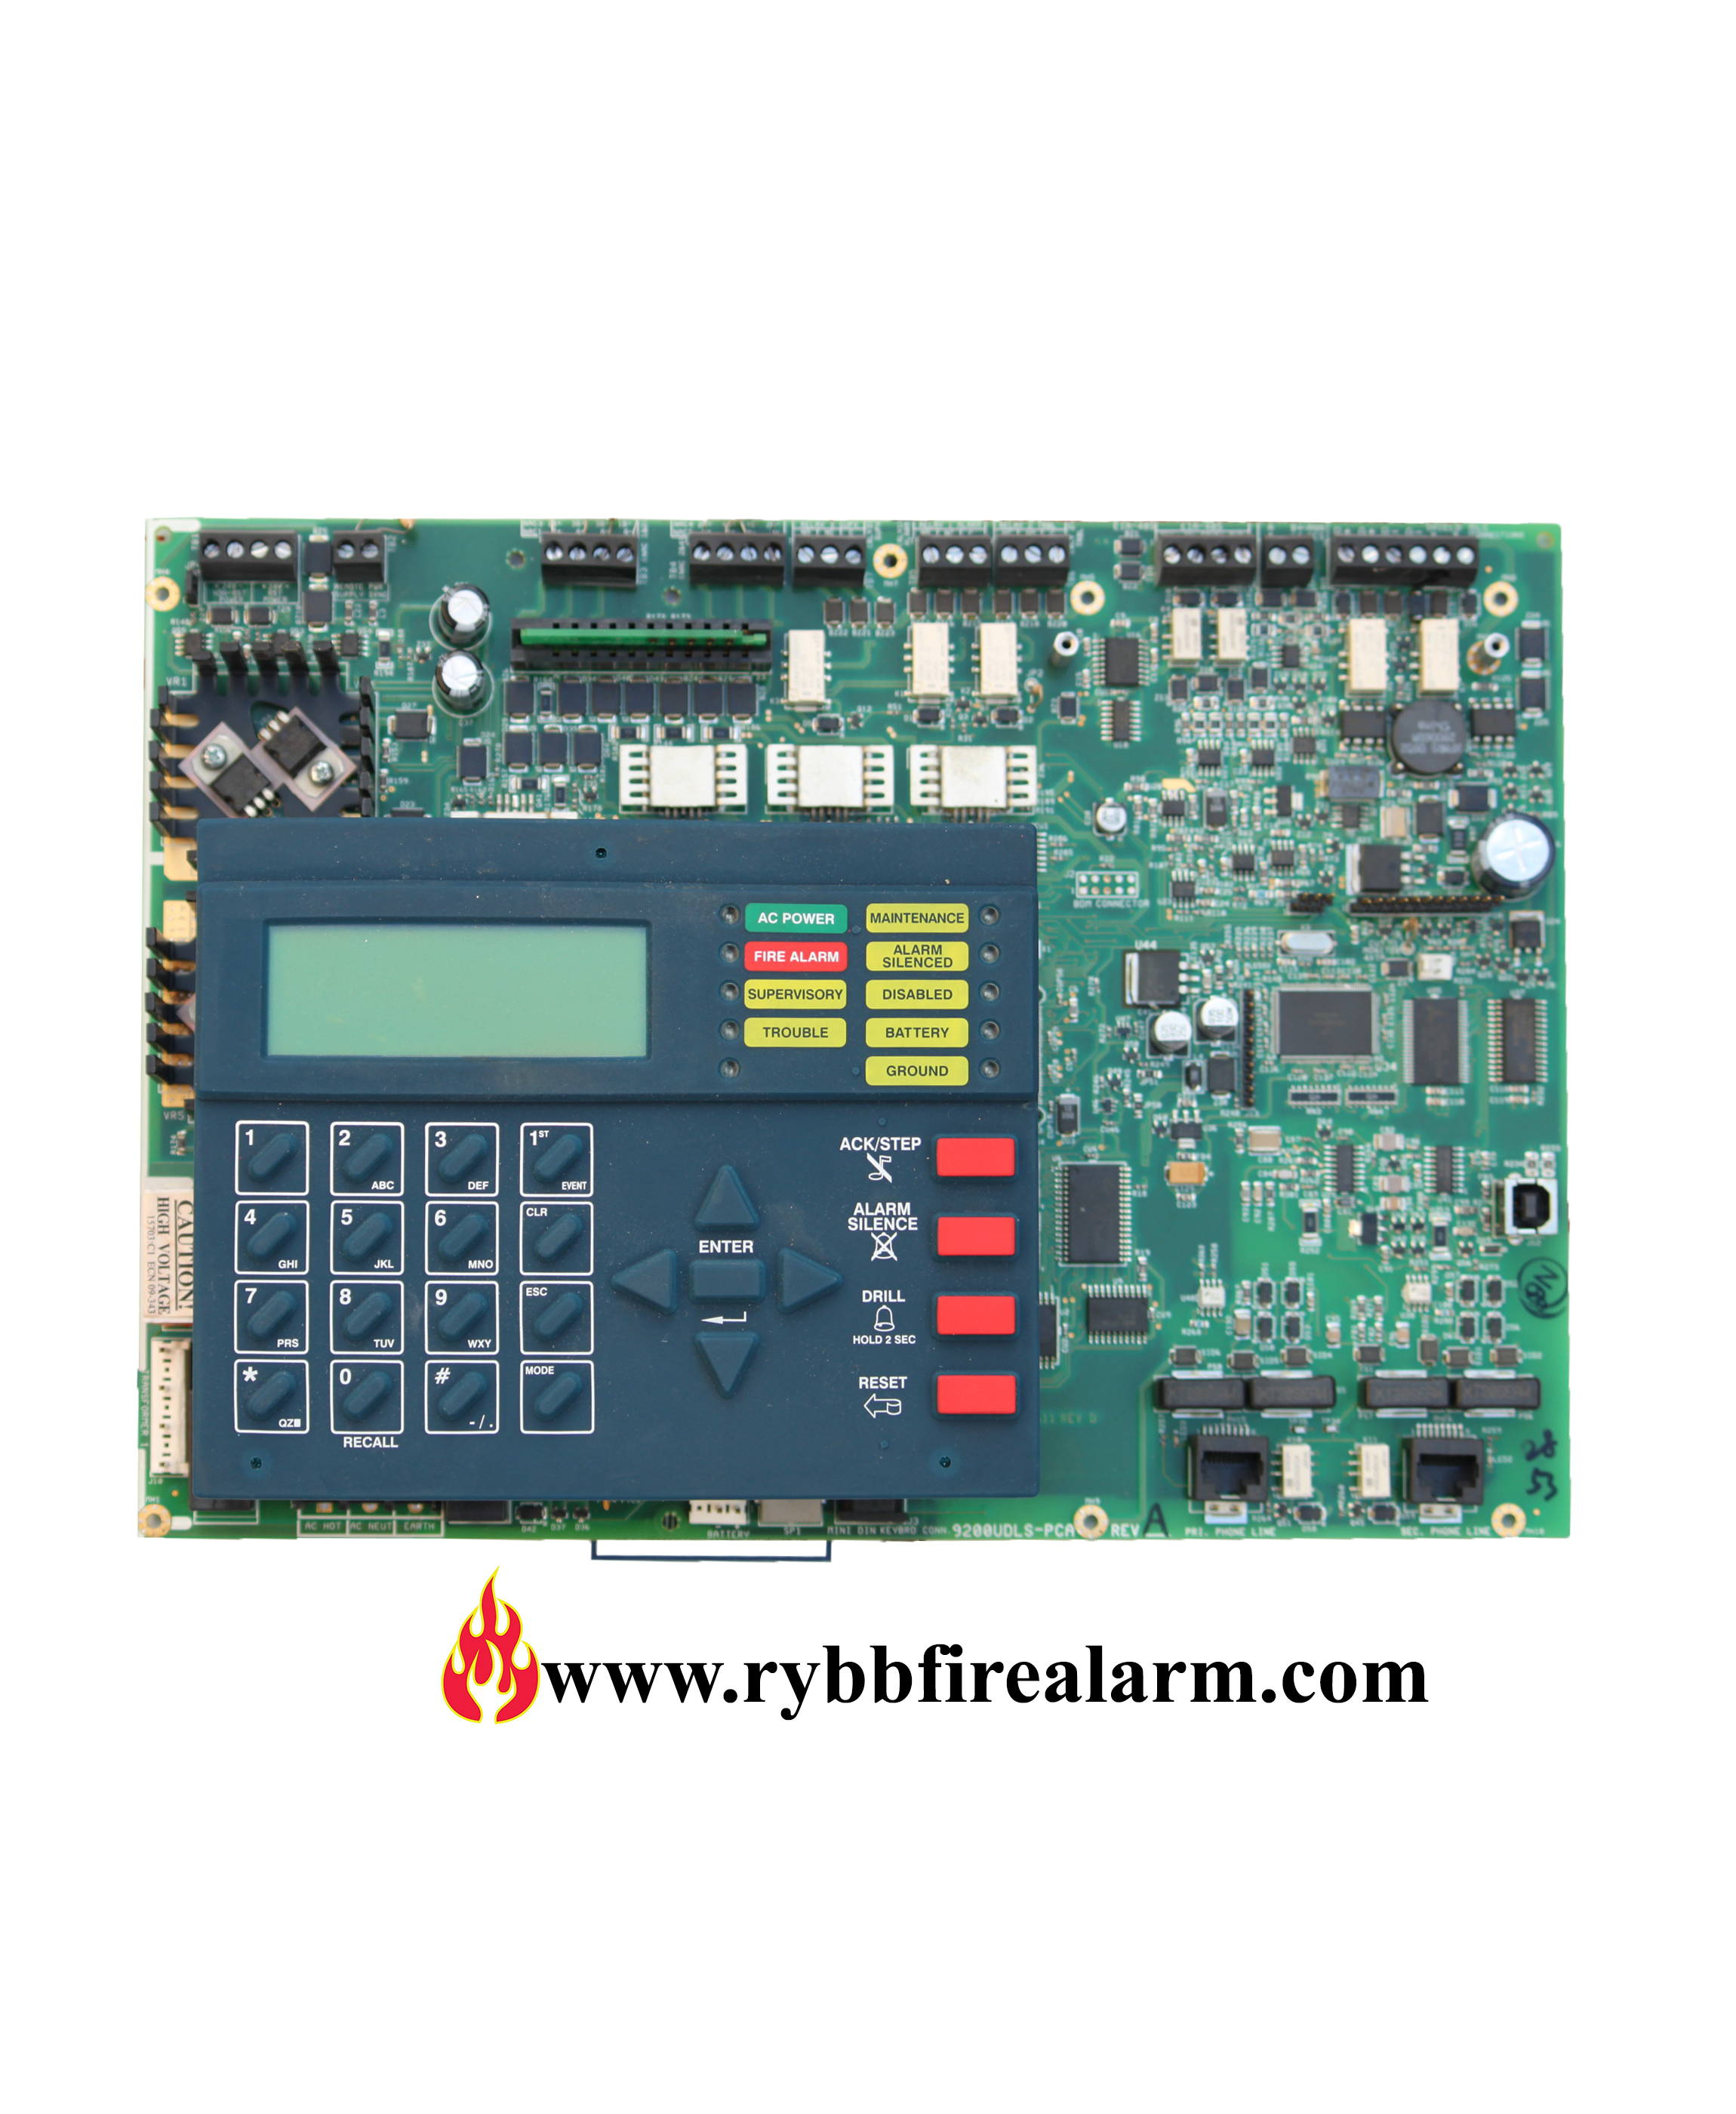 Fire-Lite MS-9200UDLS Rev 2 Replacement board – RYBB Fire Alarm ...